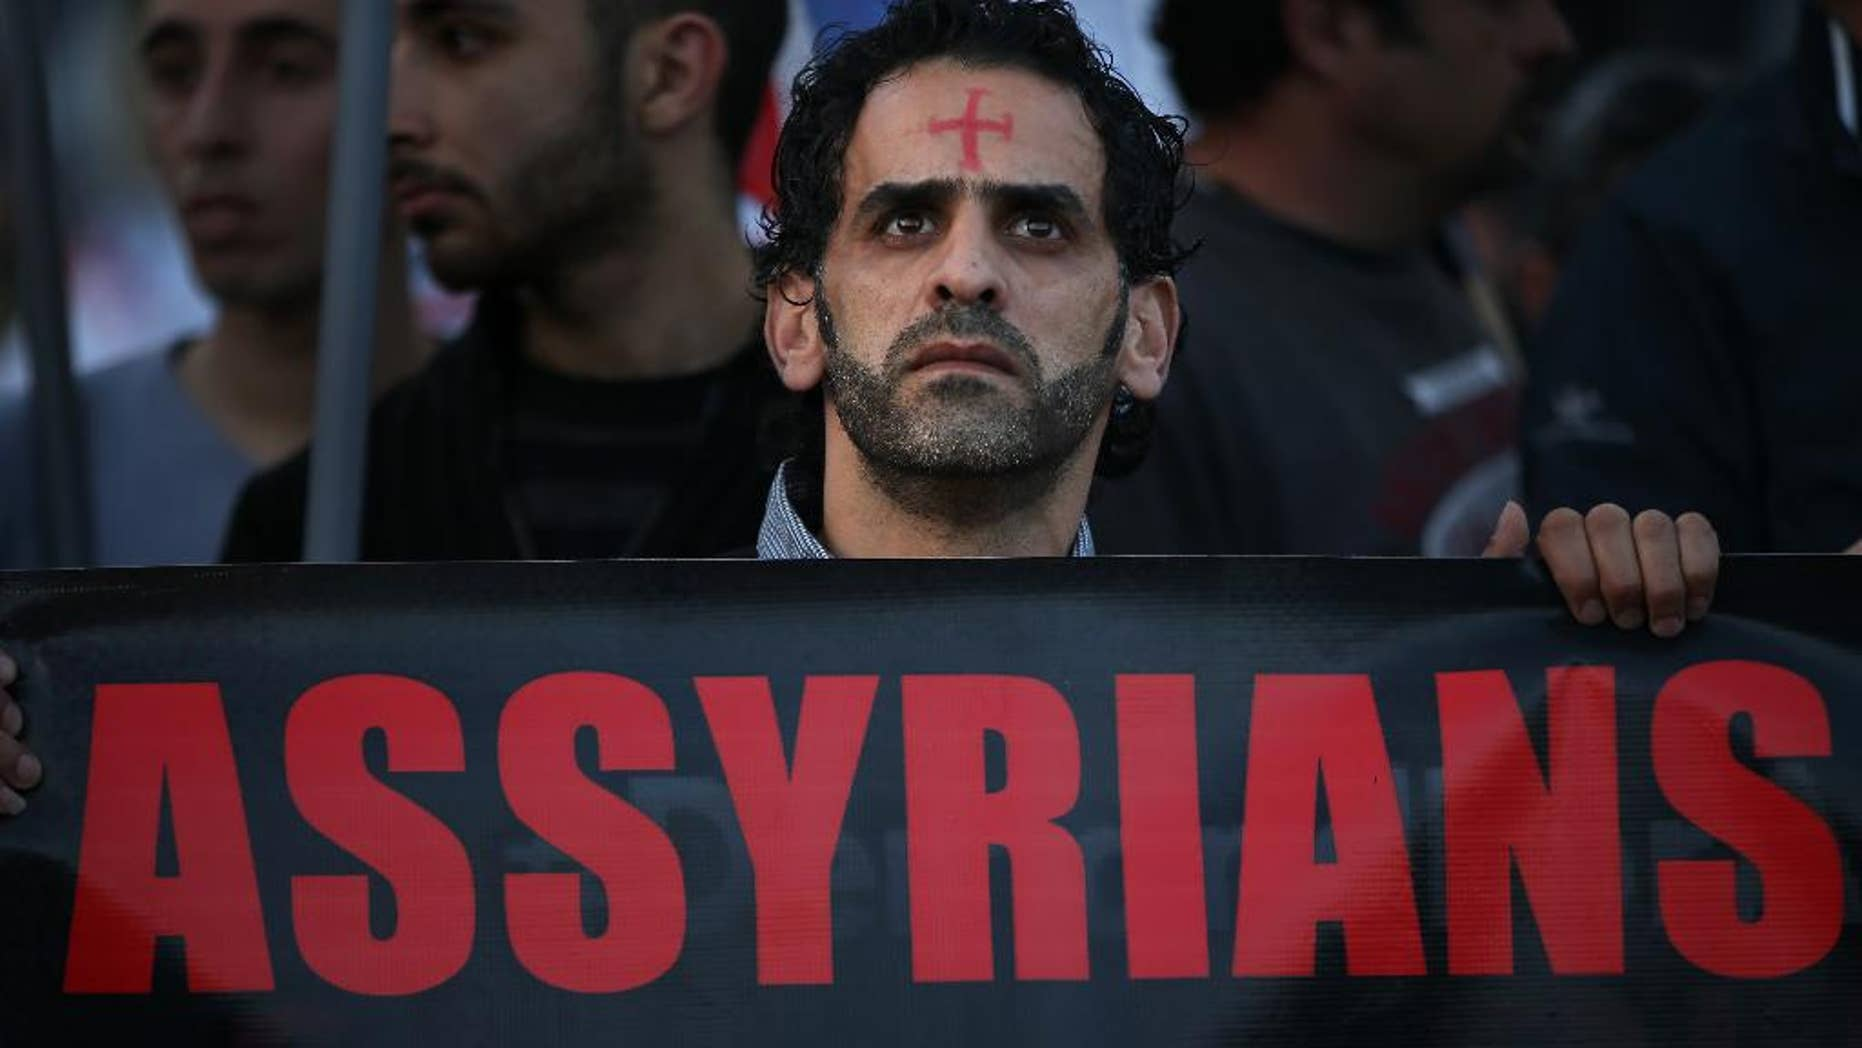 FILE - In this Saturday, Feb. 28, 2015 file photo, an Assyrian man with a red cross painted on his forehead holds a banner as he walks during a protest of several hundred people in solidarity with Christians abducted in Syria and Iraq, in downtown Beirut, Lebanon. Activists said on Saturday, March. 7, 2015, that Islamic State militants have attacked a string of predominantly Christian villages in northeastern Syria, touching off heavy clashes with Kurdish militiamen and their local allies. (AP Photo/Hussein Malla, File)